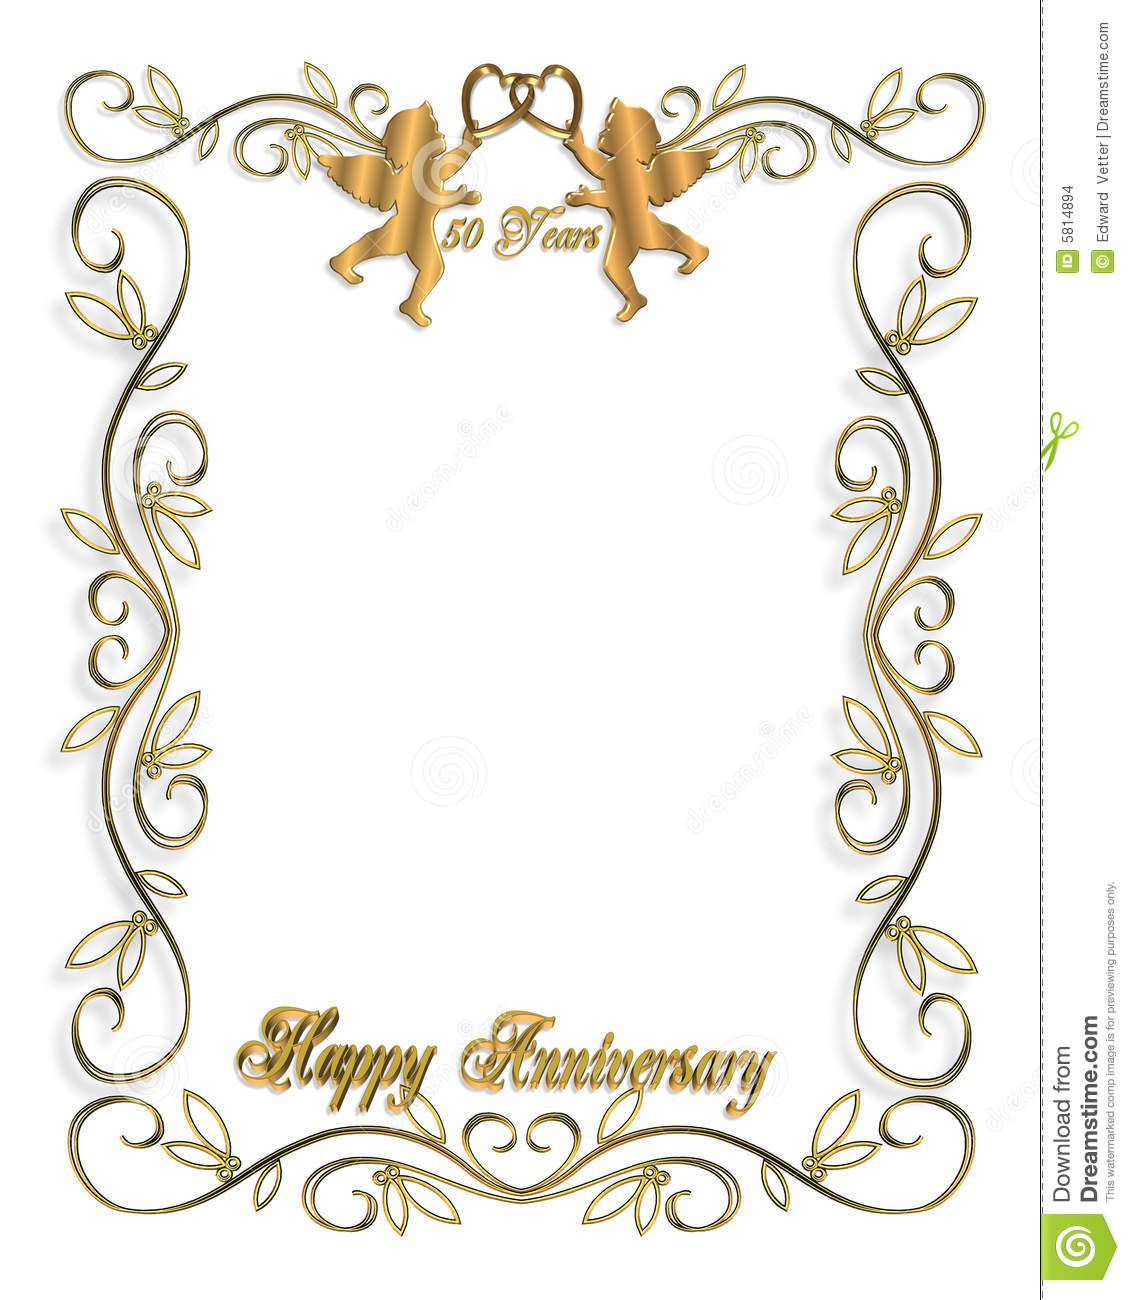 009 Magnificent Golden Wedding Anniversary Invitation Template Free Example  50th Microsoft Word DownloadFull